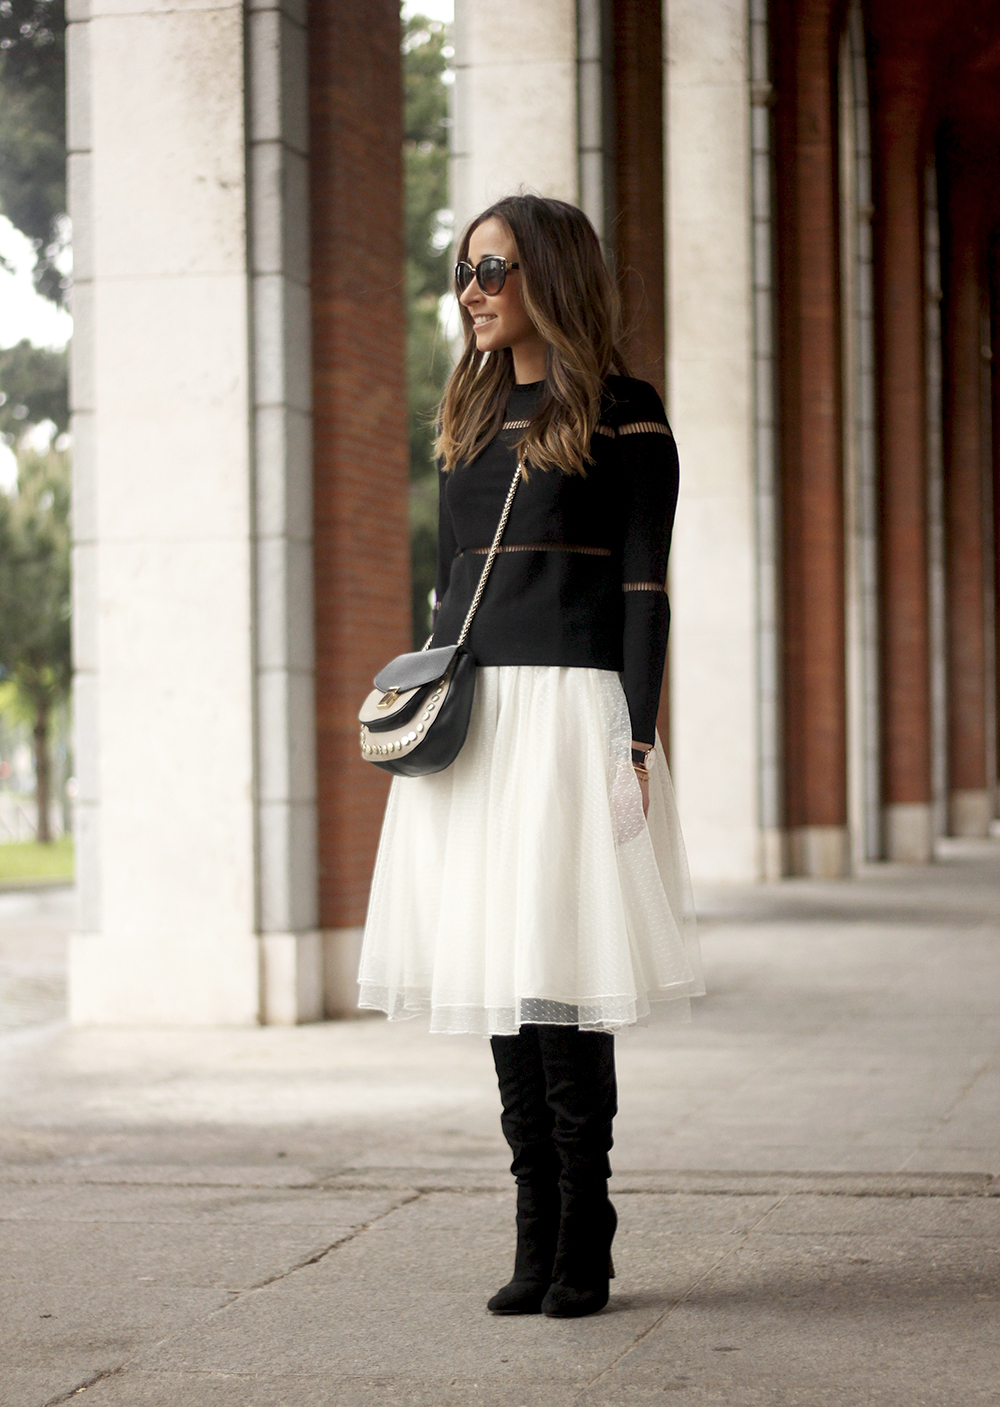 Tulle white skirt over the knee boots black sweater spring rainy day uterqüe bag fashion outfit04